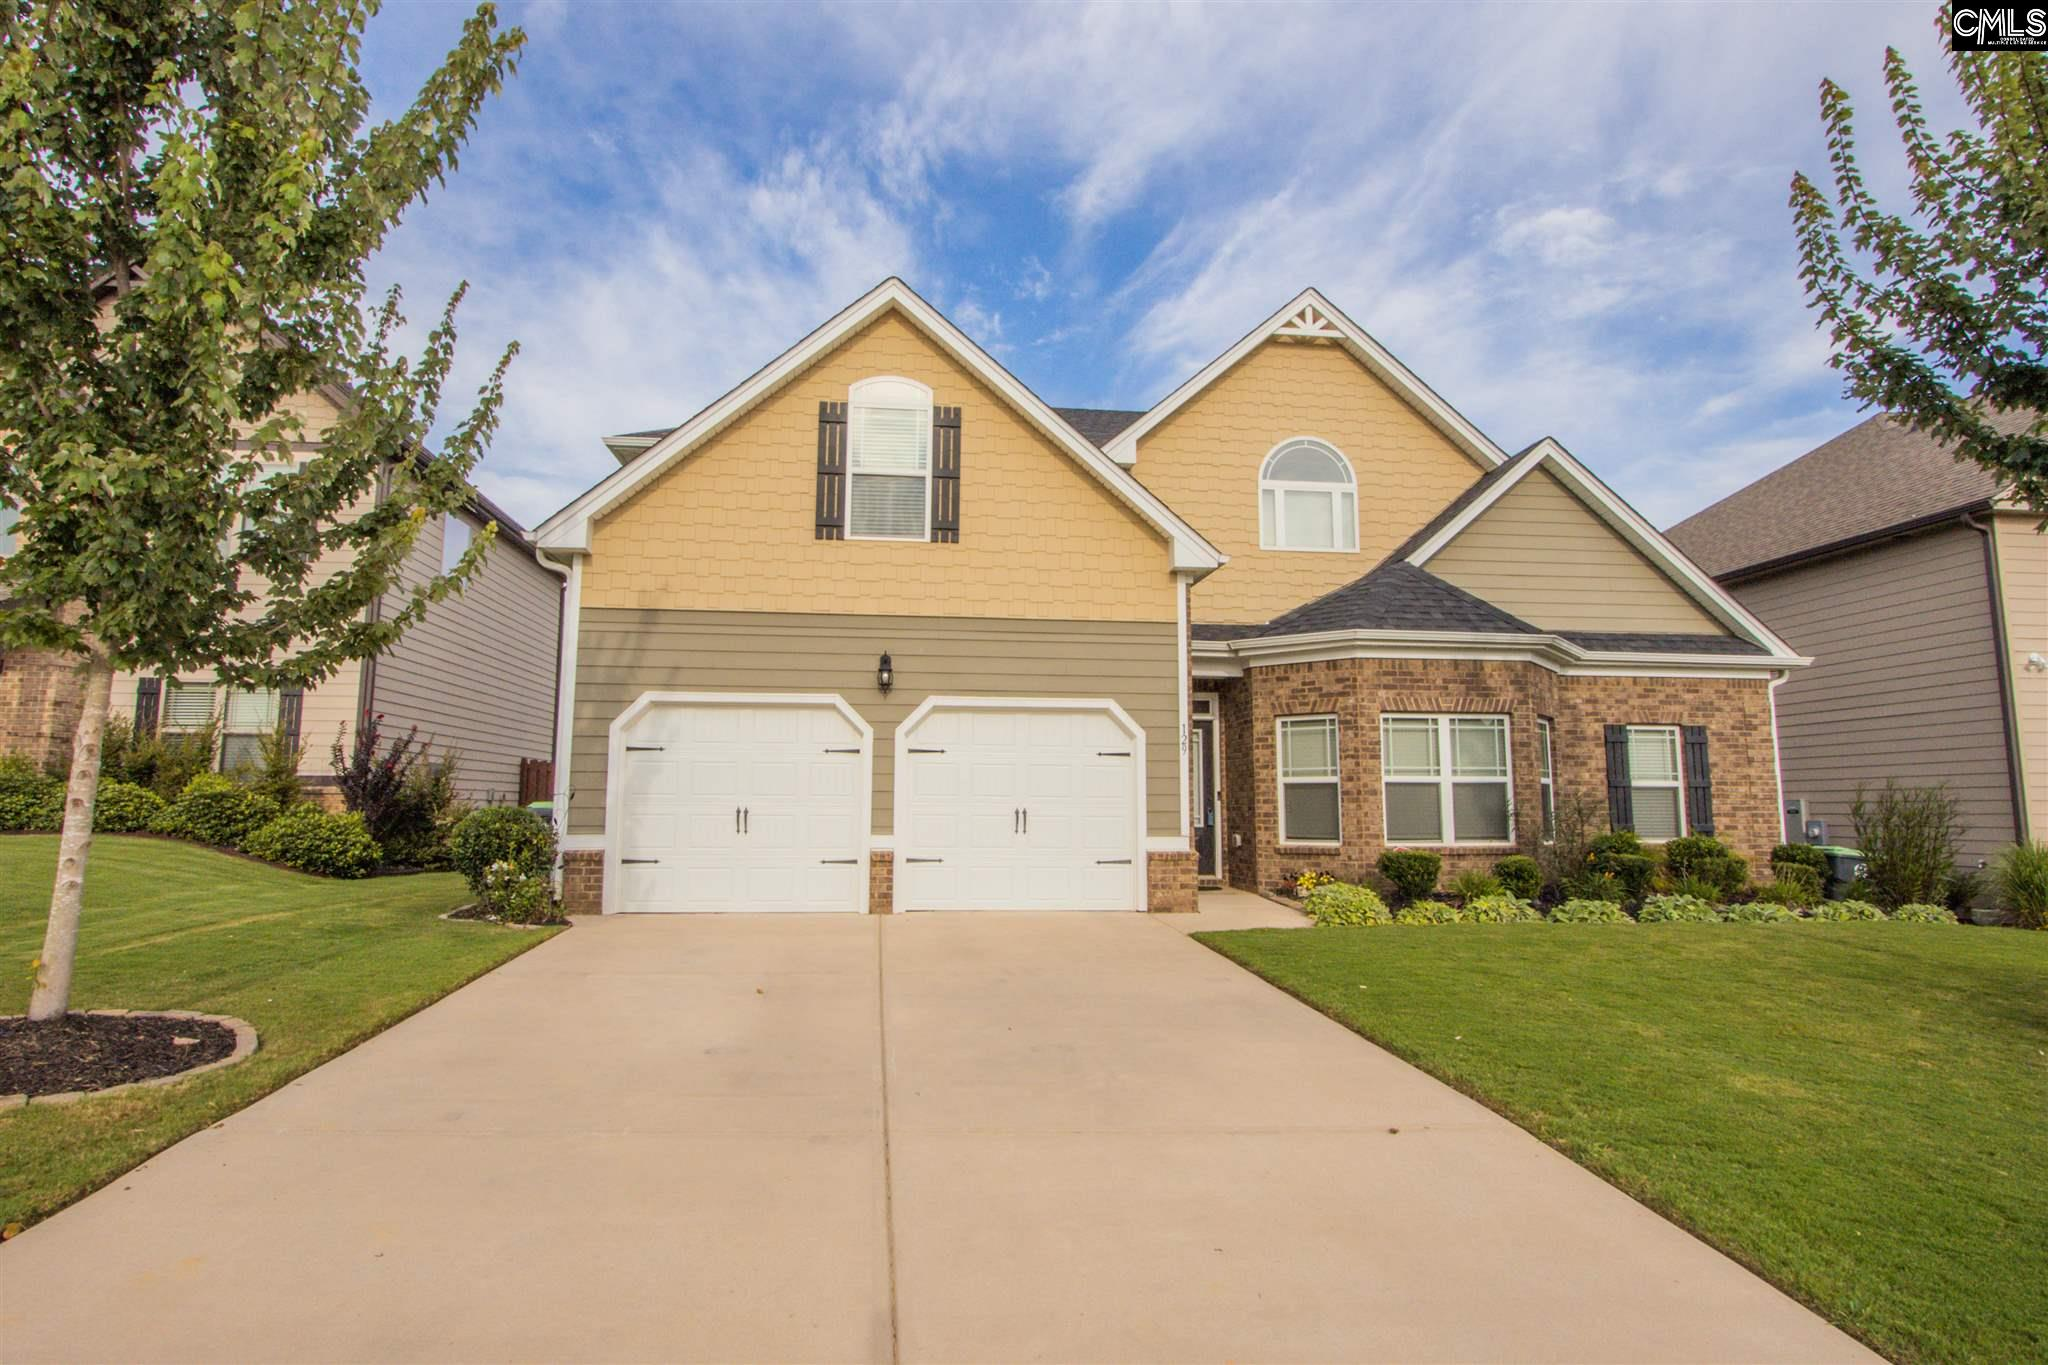 129 Village Green Lexington, SC 29072-8005